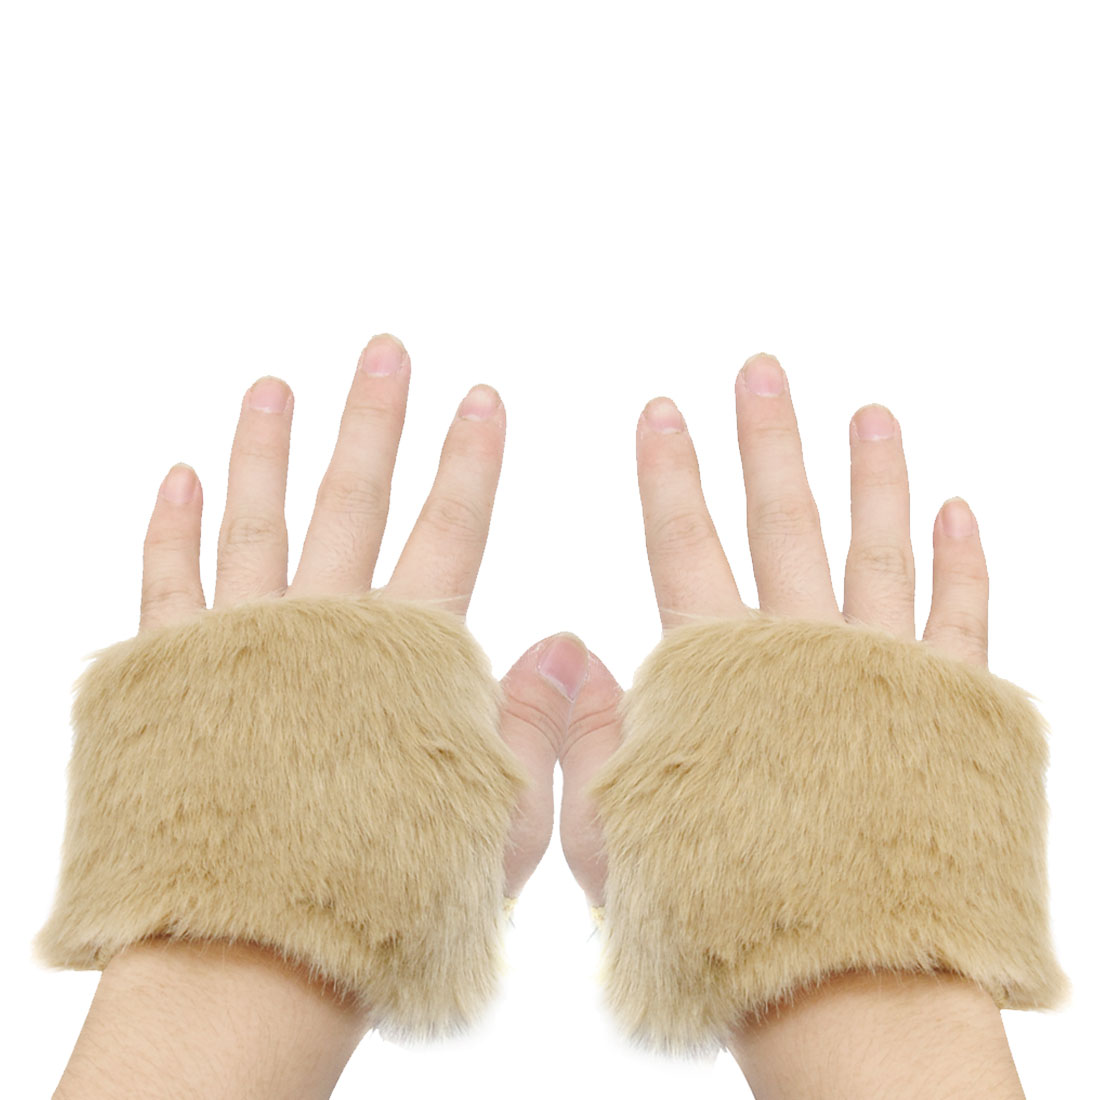 Pair Dark Beige Faux Fur Fingerless Winter Wrist Gloves for Ladies